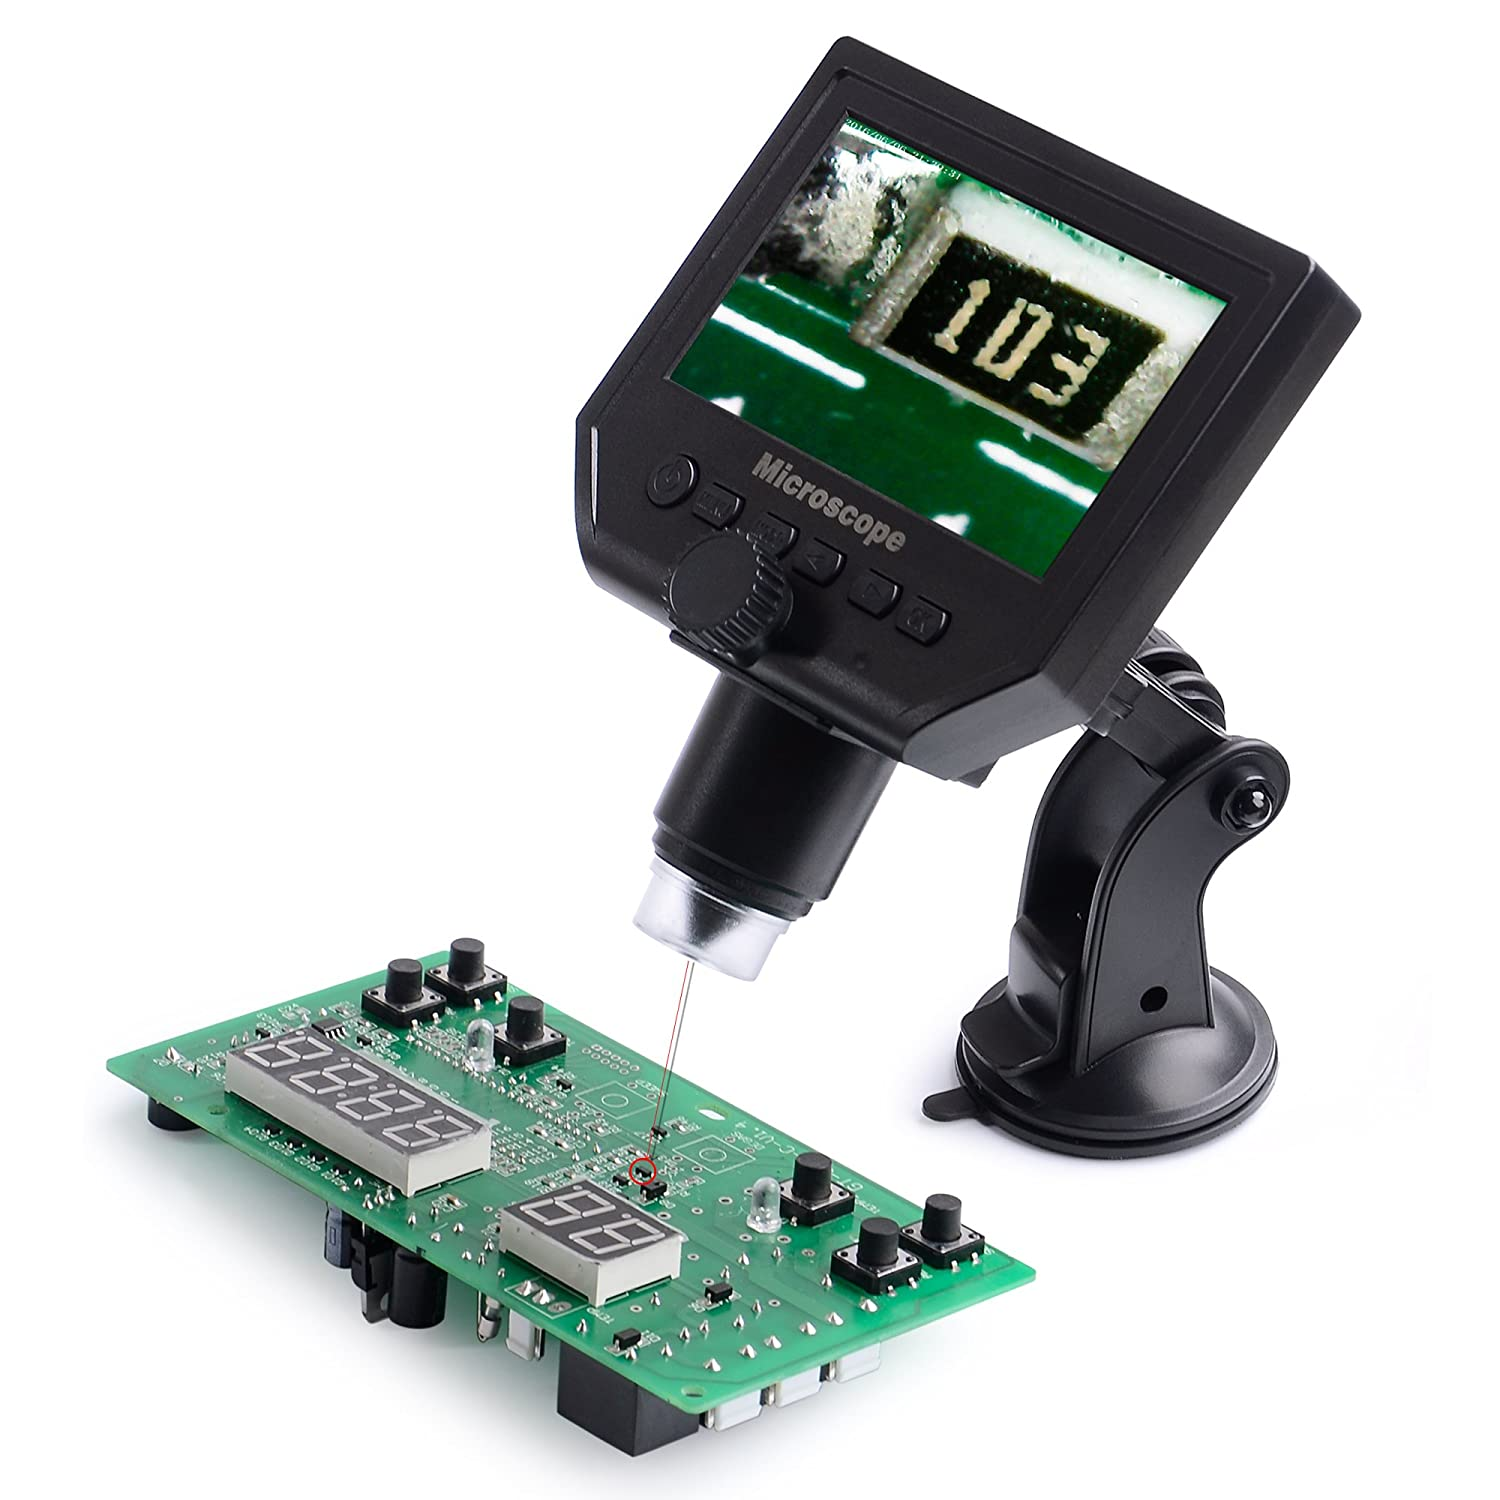 Rechargeable Digital Microscope with Photo//Video Capture 1-600/× Magnification DM-G600